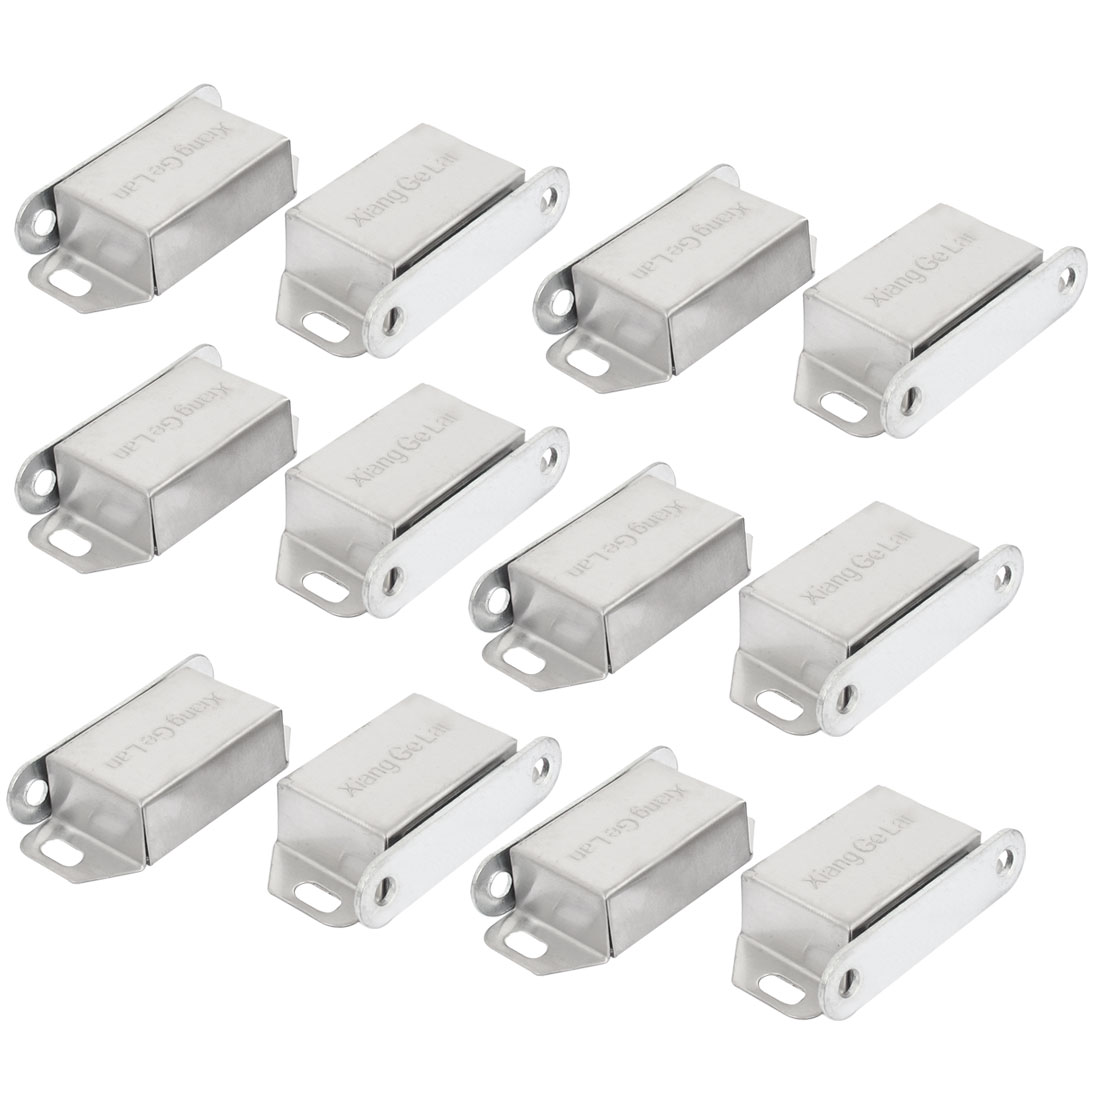 12pcs Stainless Steel Door Cabinet Wardrobe Magnetic Catch Stopper Holder Latch